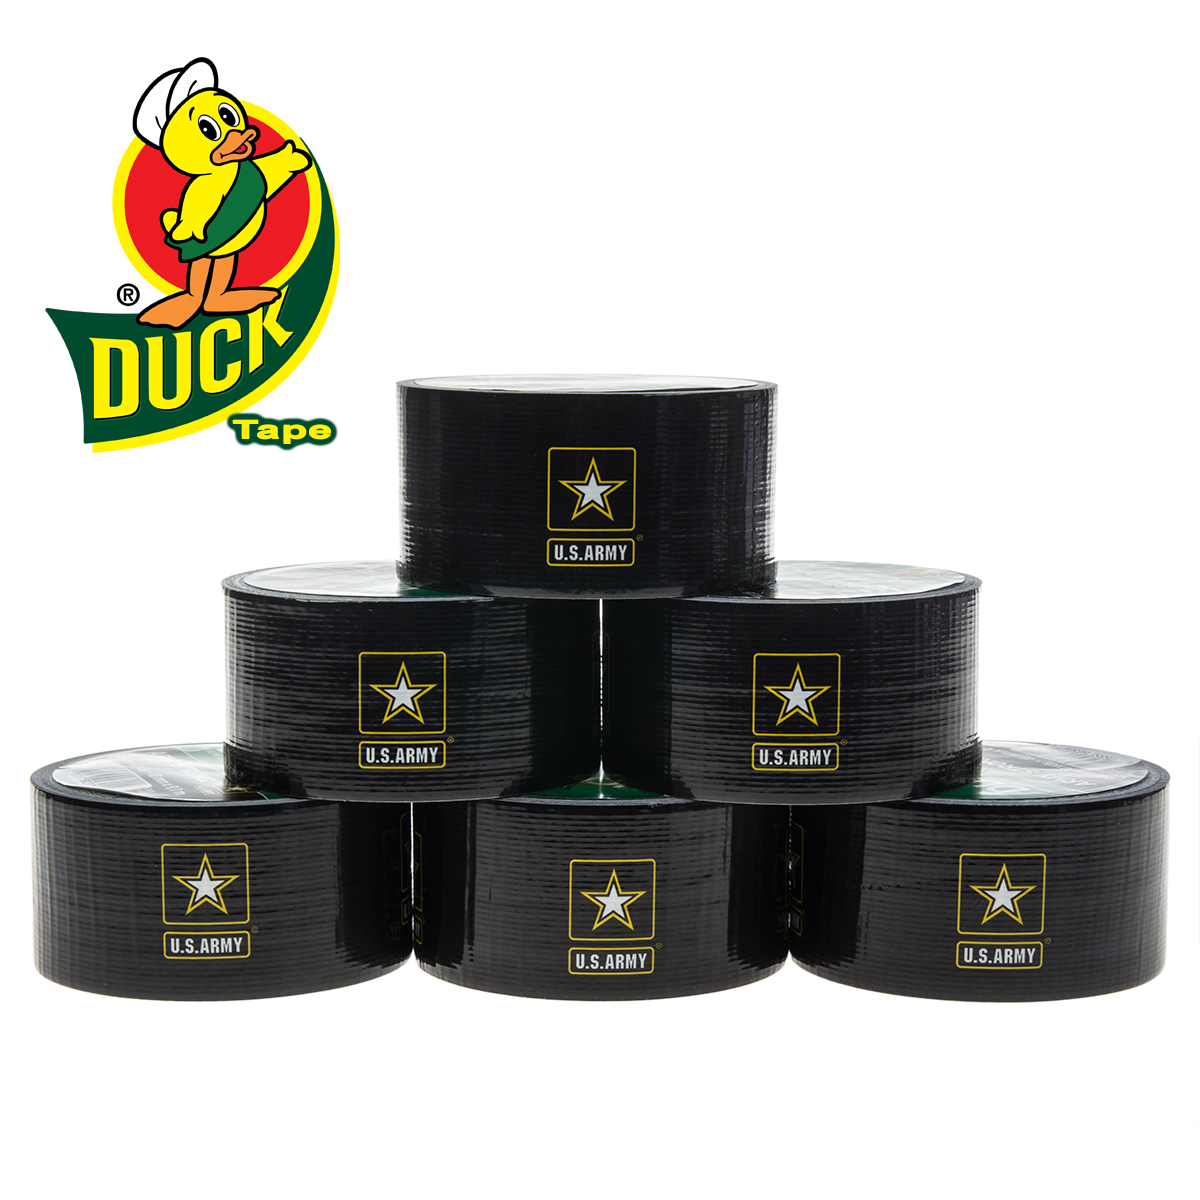 6 Rolls Army Logo Duck Brand Duct Tape Pattern Arts & Crafts Projects DIY 60yds